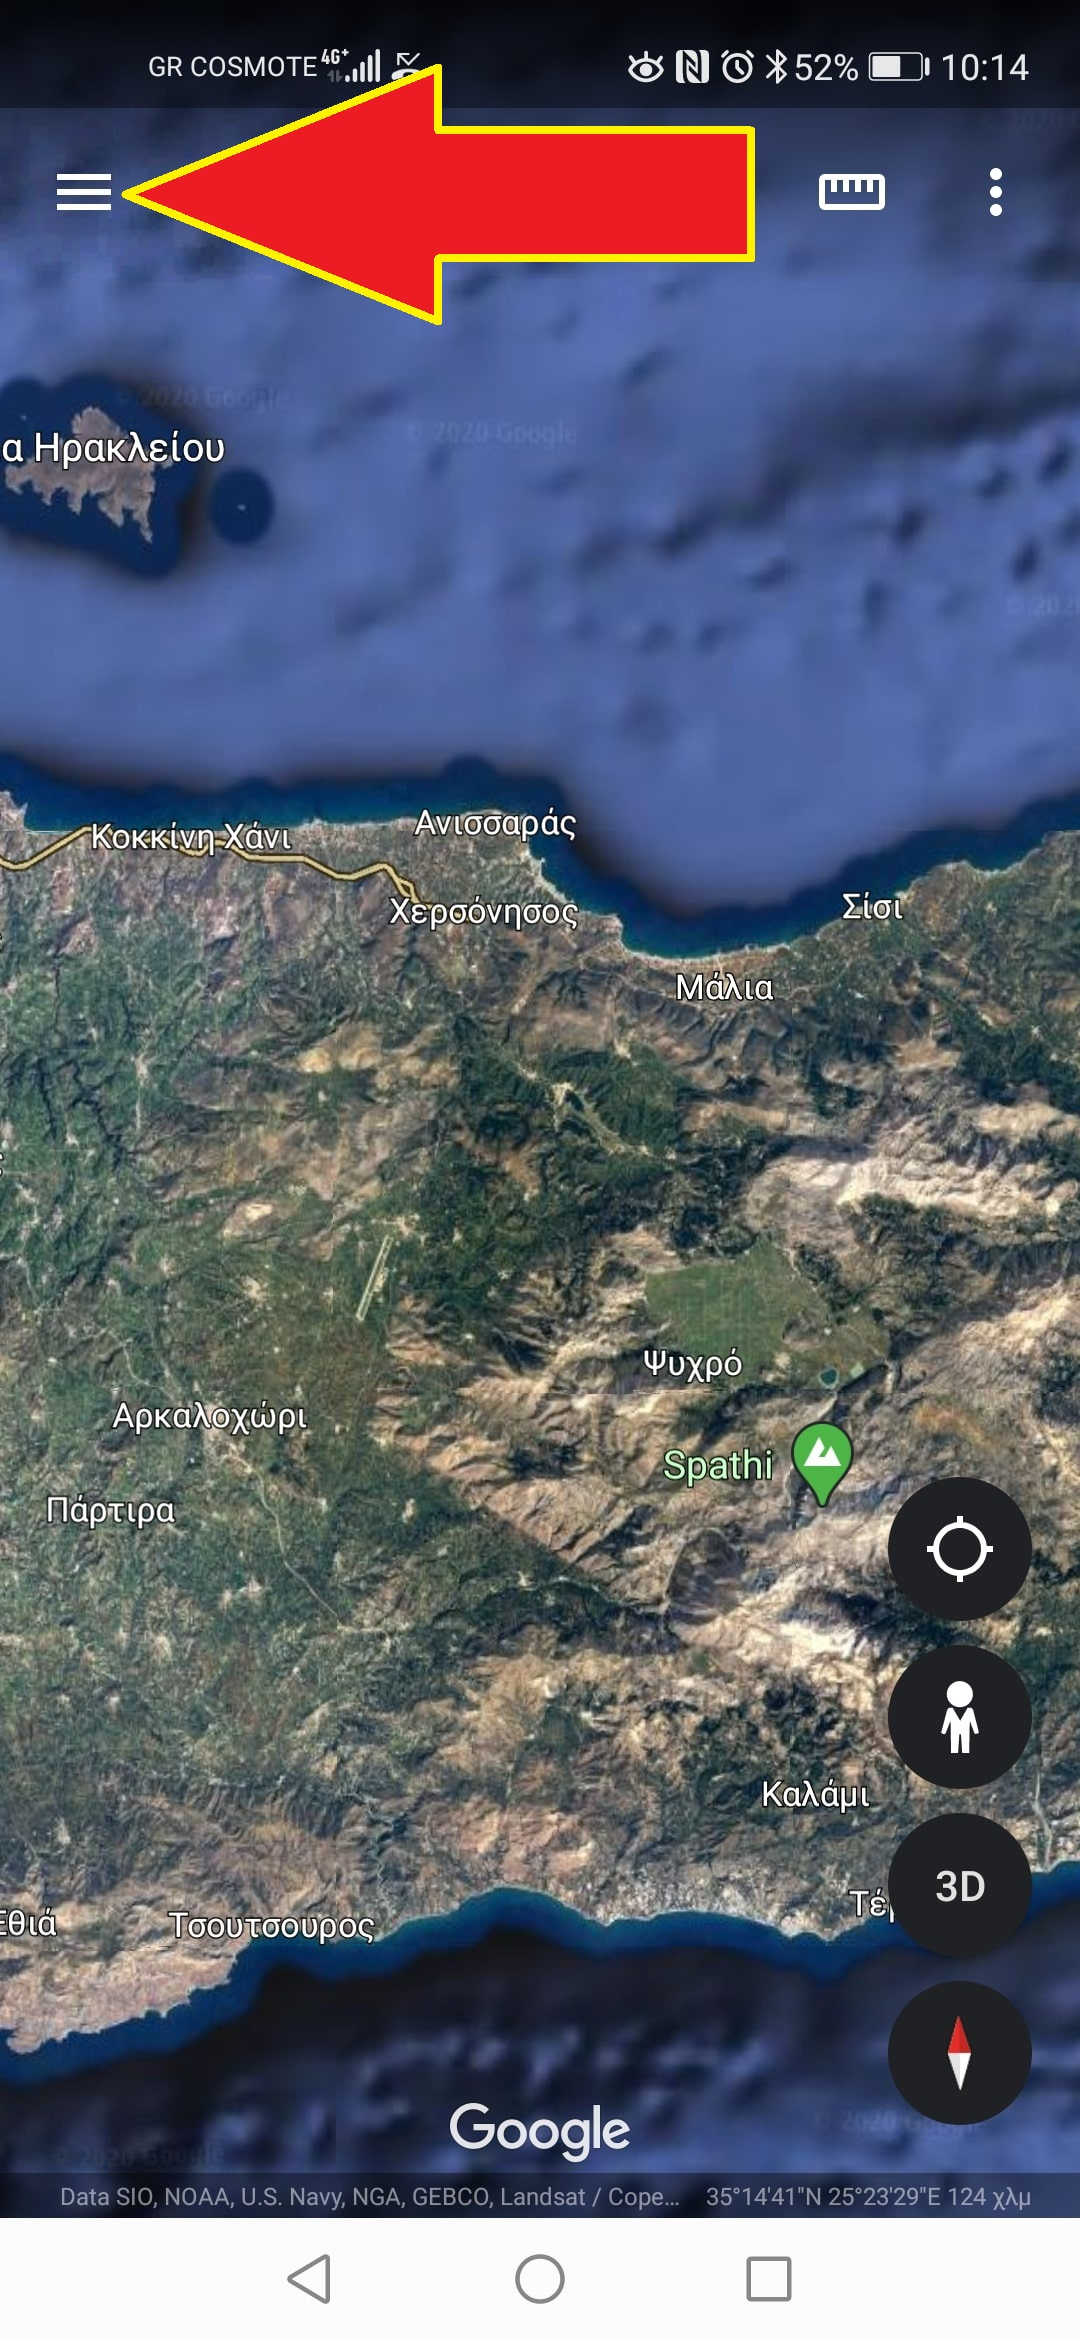 how to use a cyclingcreta map of Crete with google earth 2